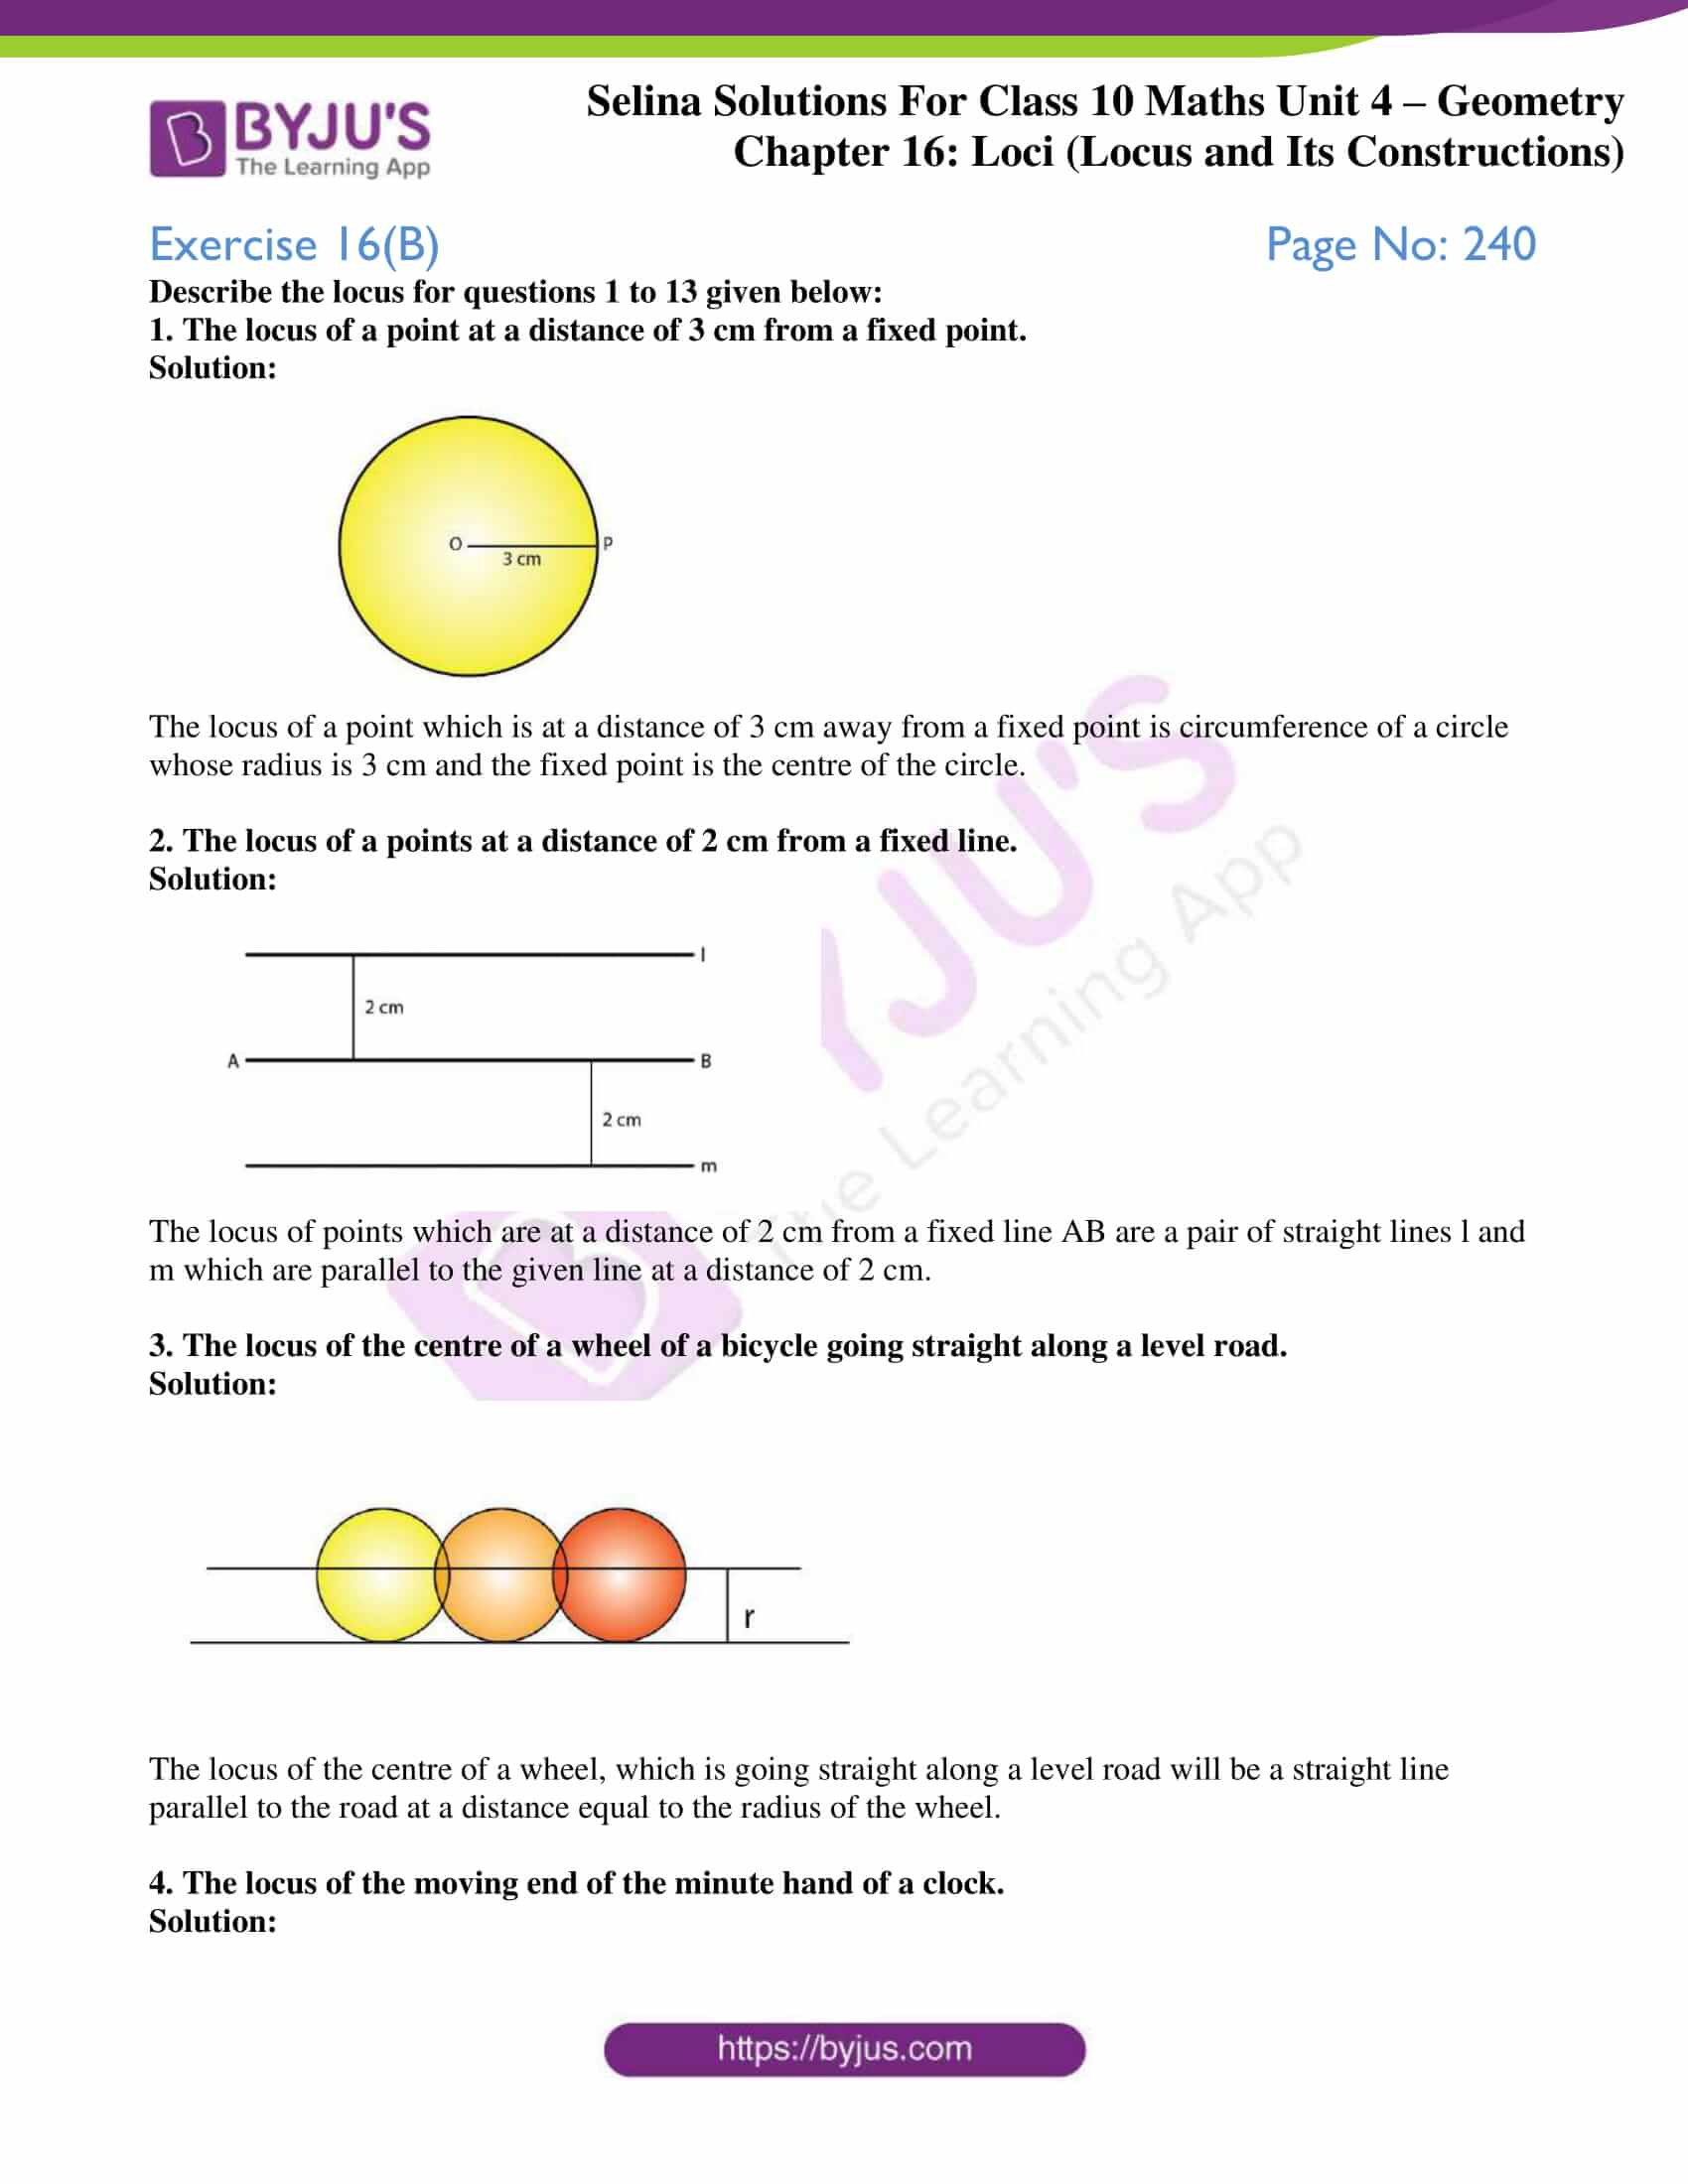 selina solution concise maths class 10 chapter 16 ex b 1